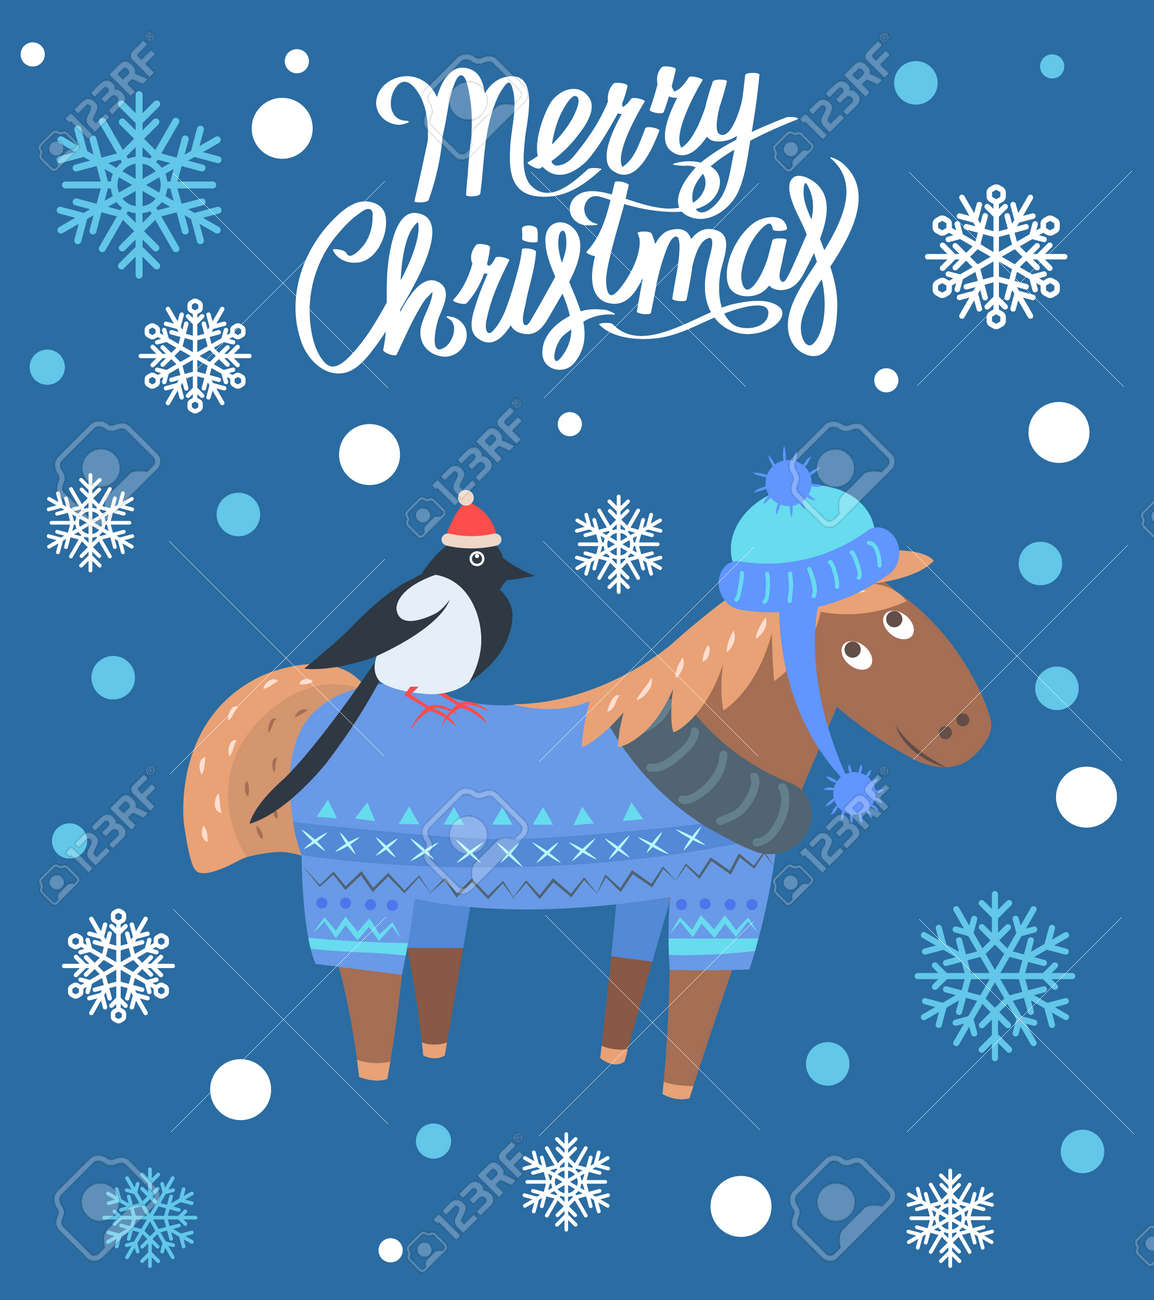 Merry Christmas Horse And Bird Vector Illustration Royalty Free Cliparts Vectors And Stock Illustration Image 91039955